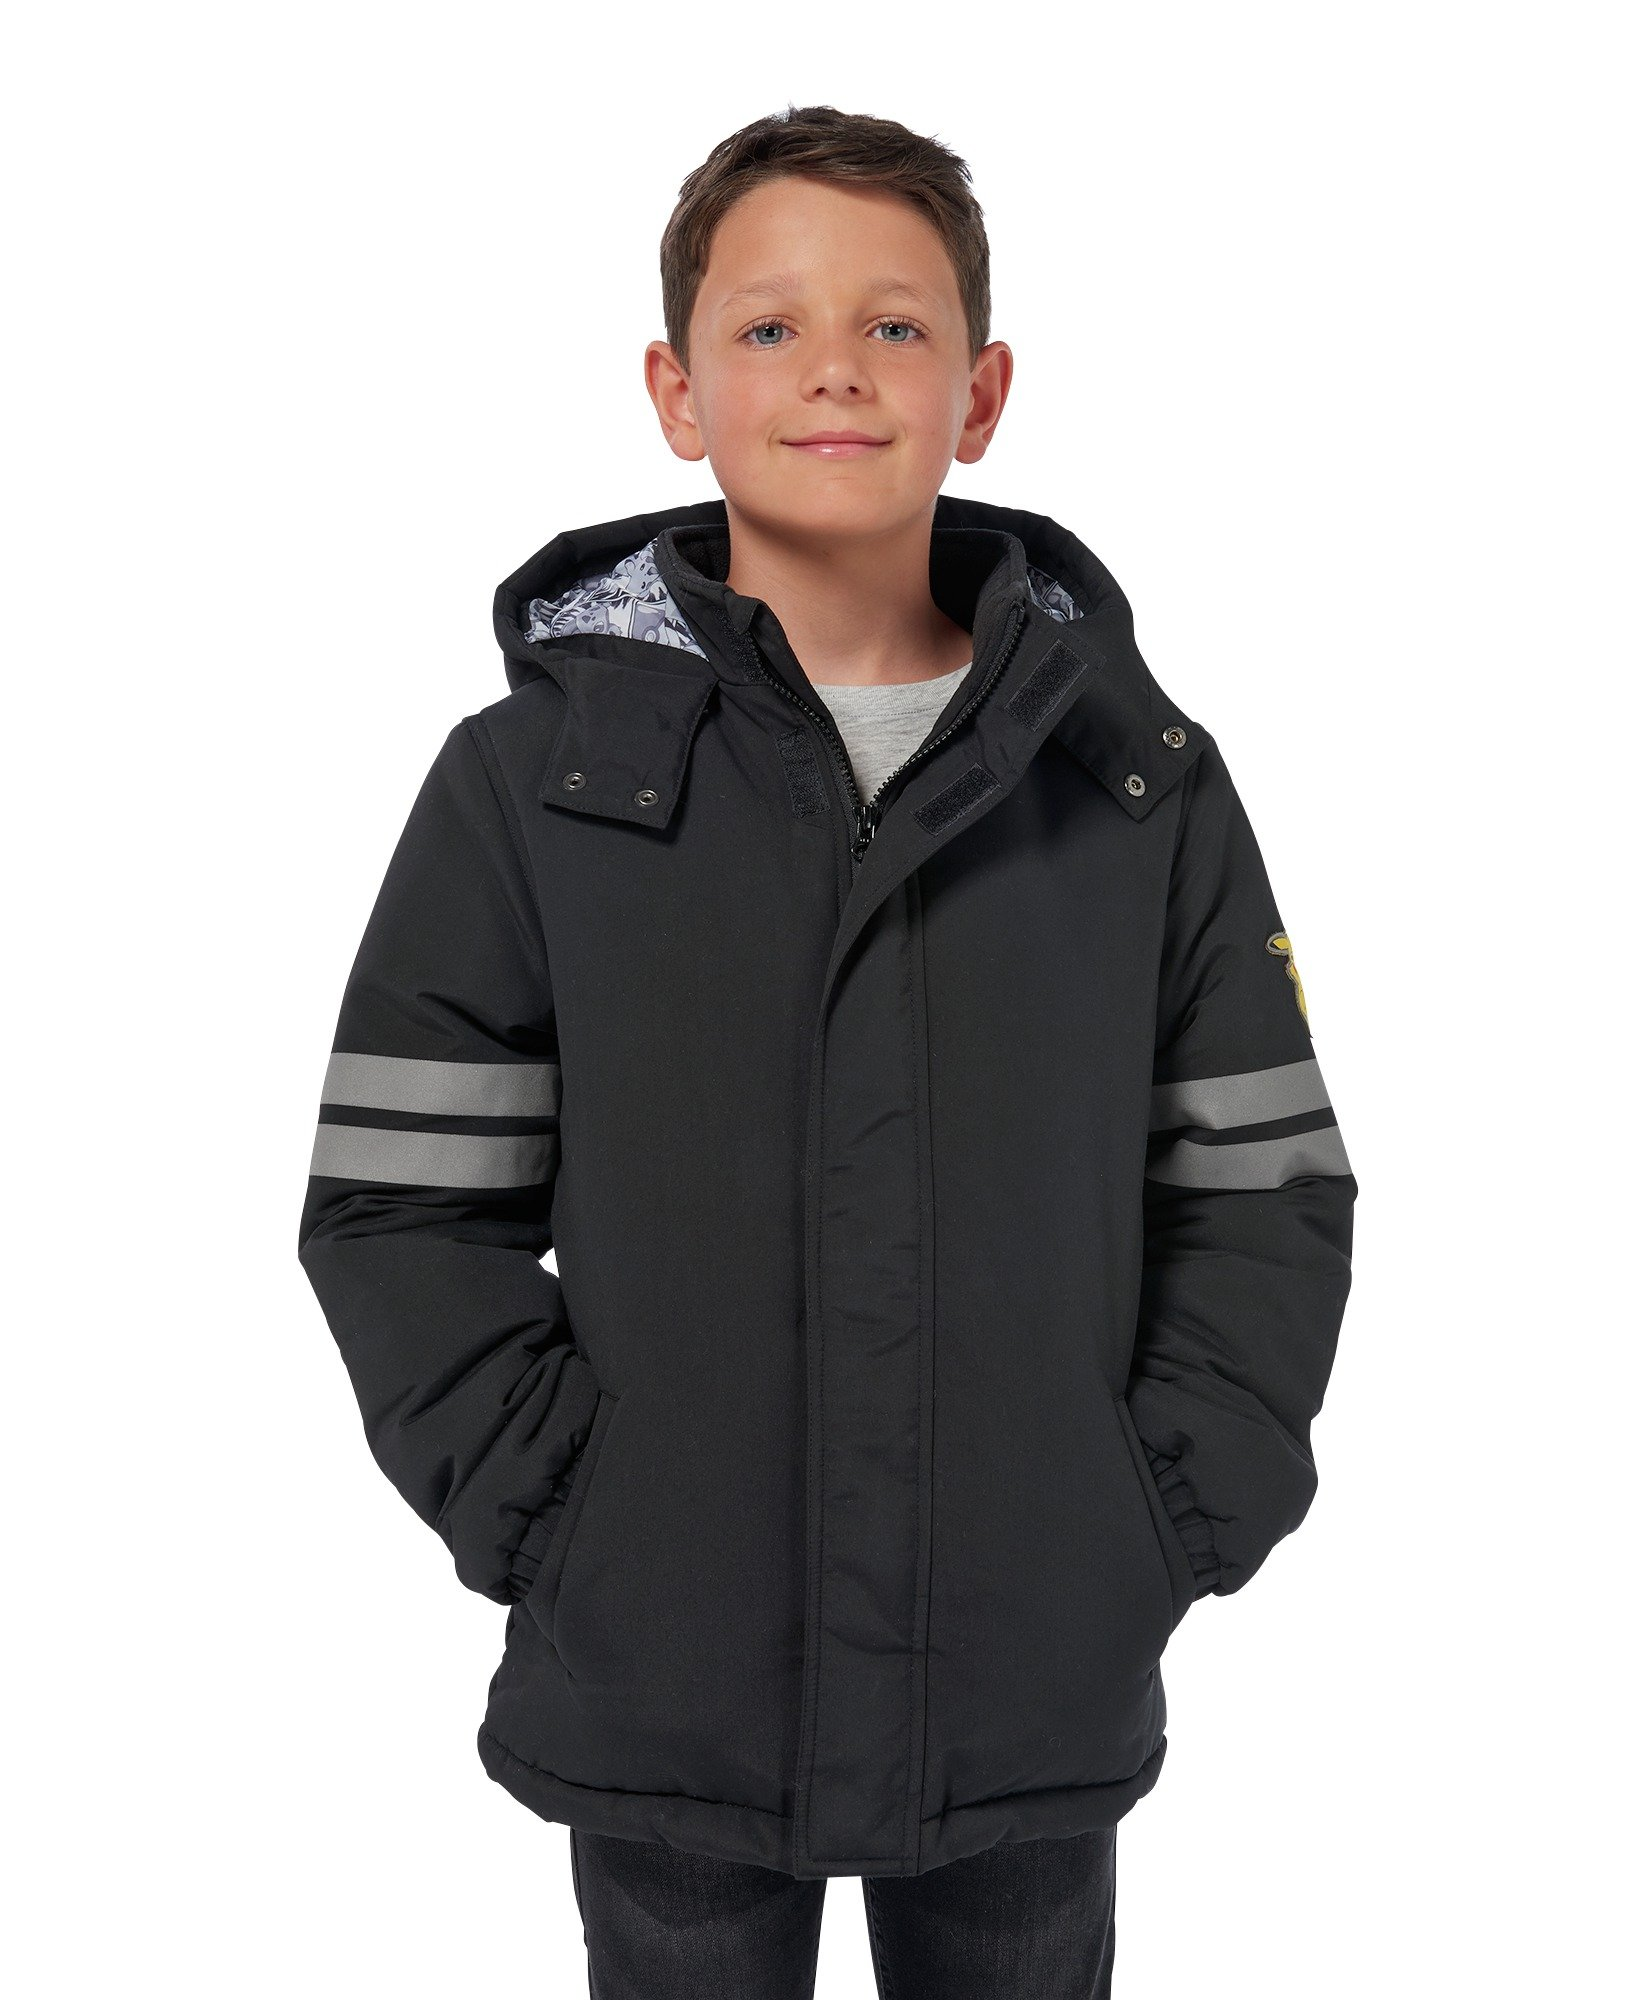 Image of Pokemon Black Jacket - 7-8 years